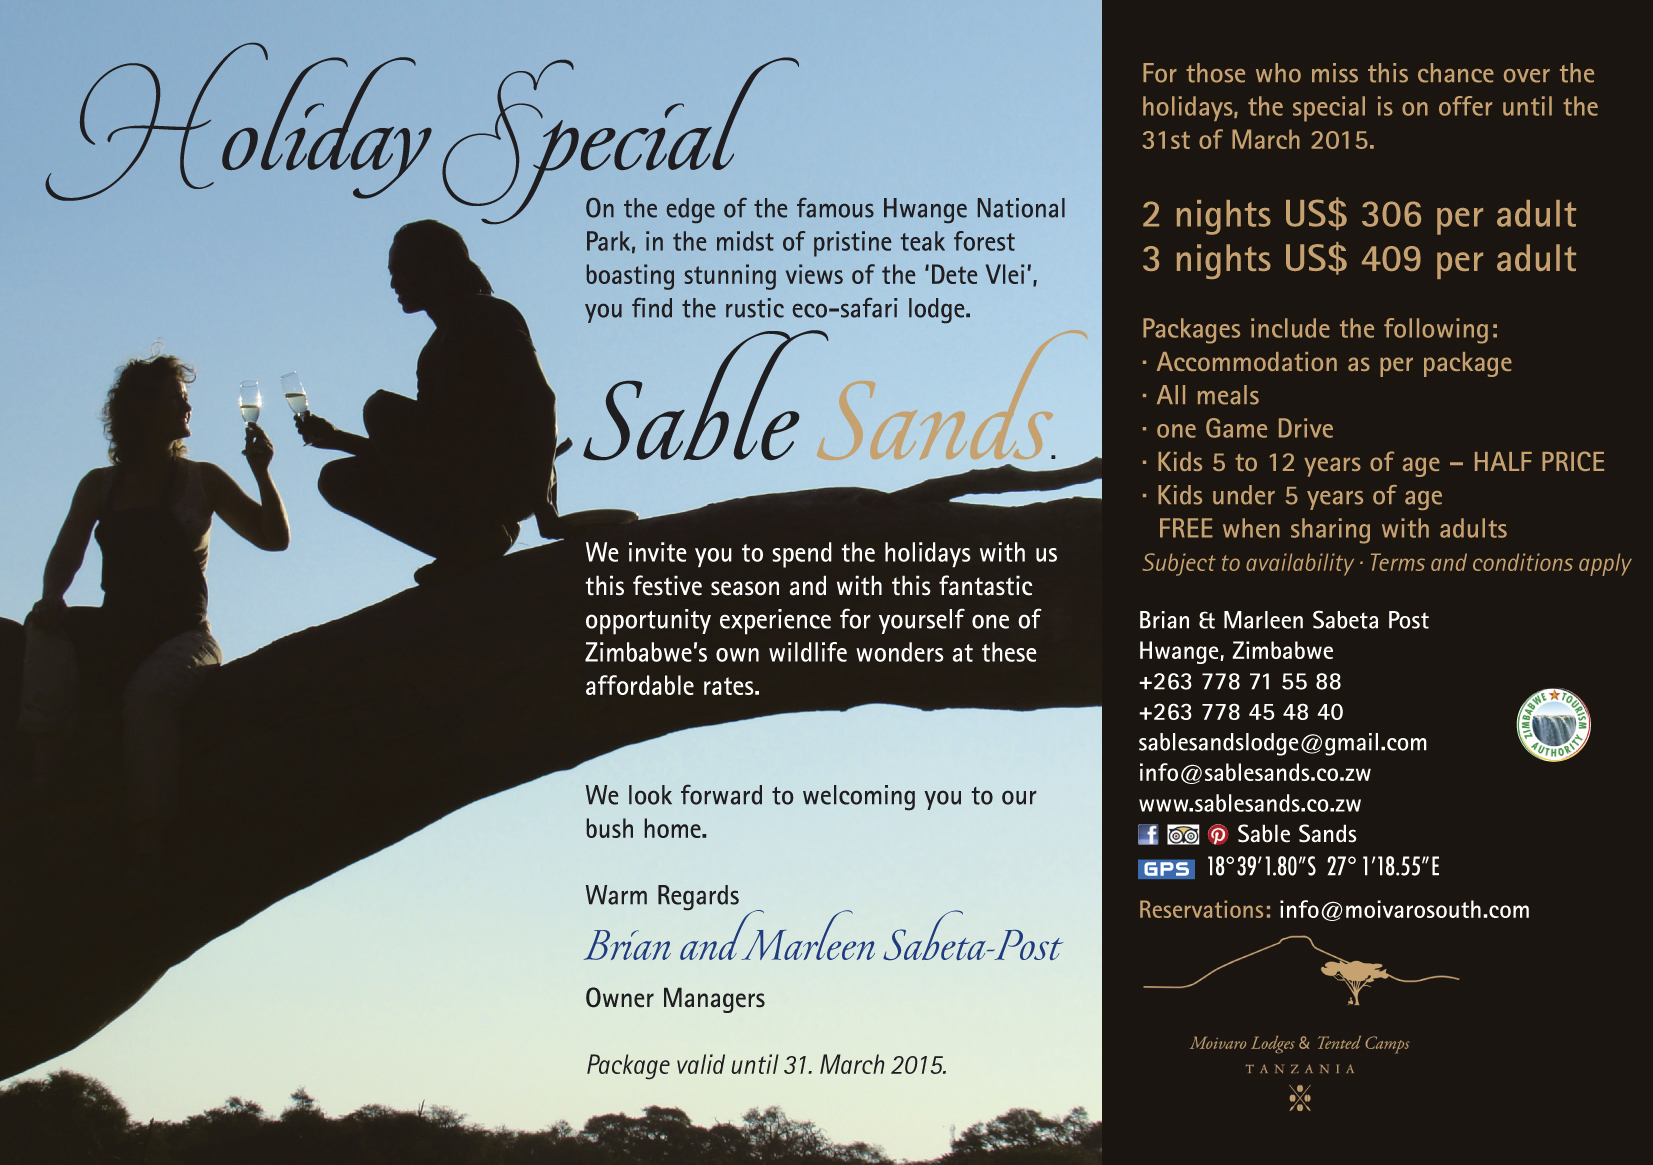 Sable Sands Holiday Ad.indd